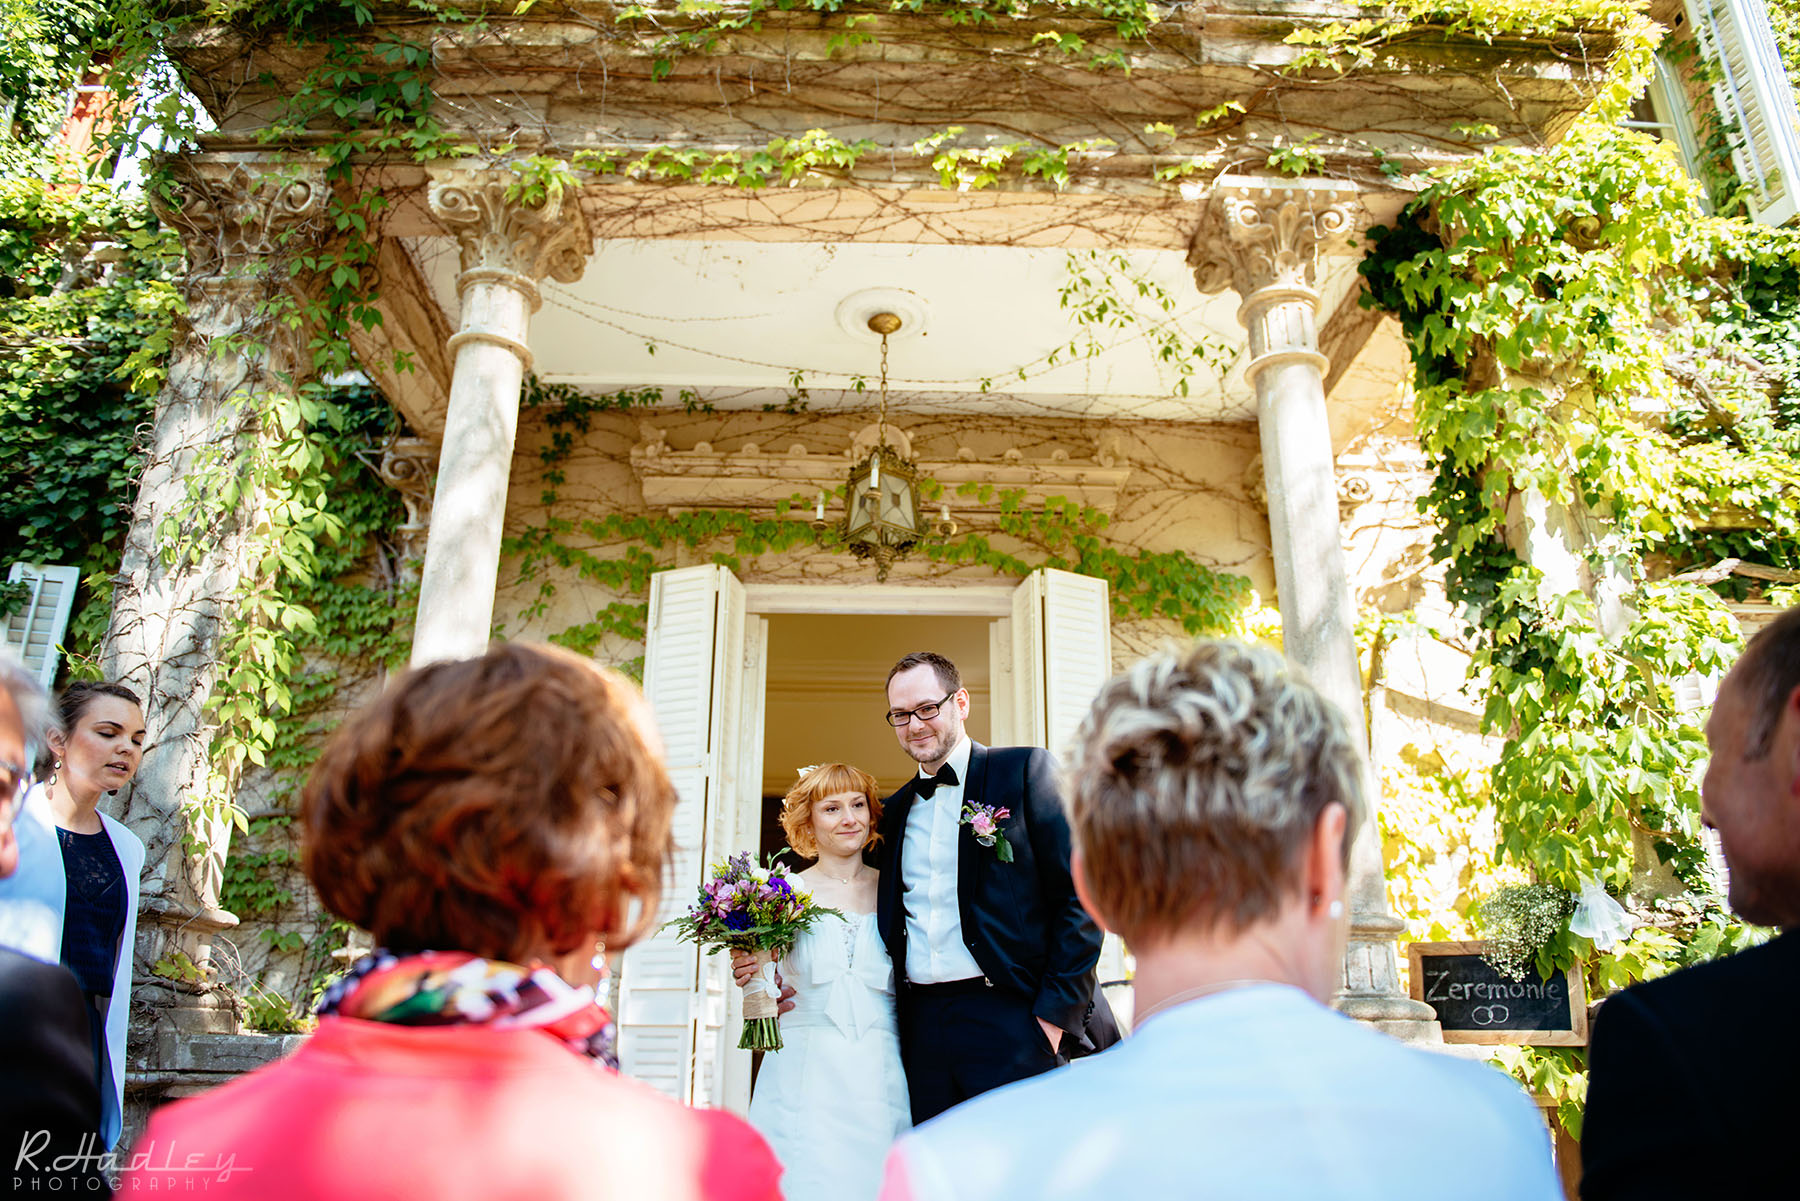 Wedding photographer at El Palacete d'Orsa, Barcelona.